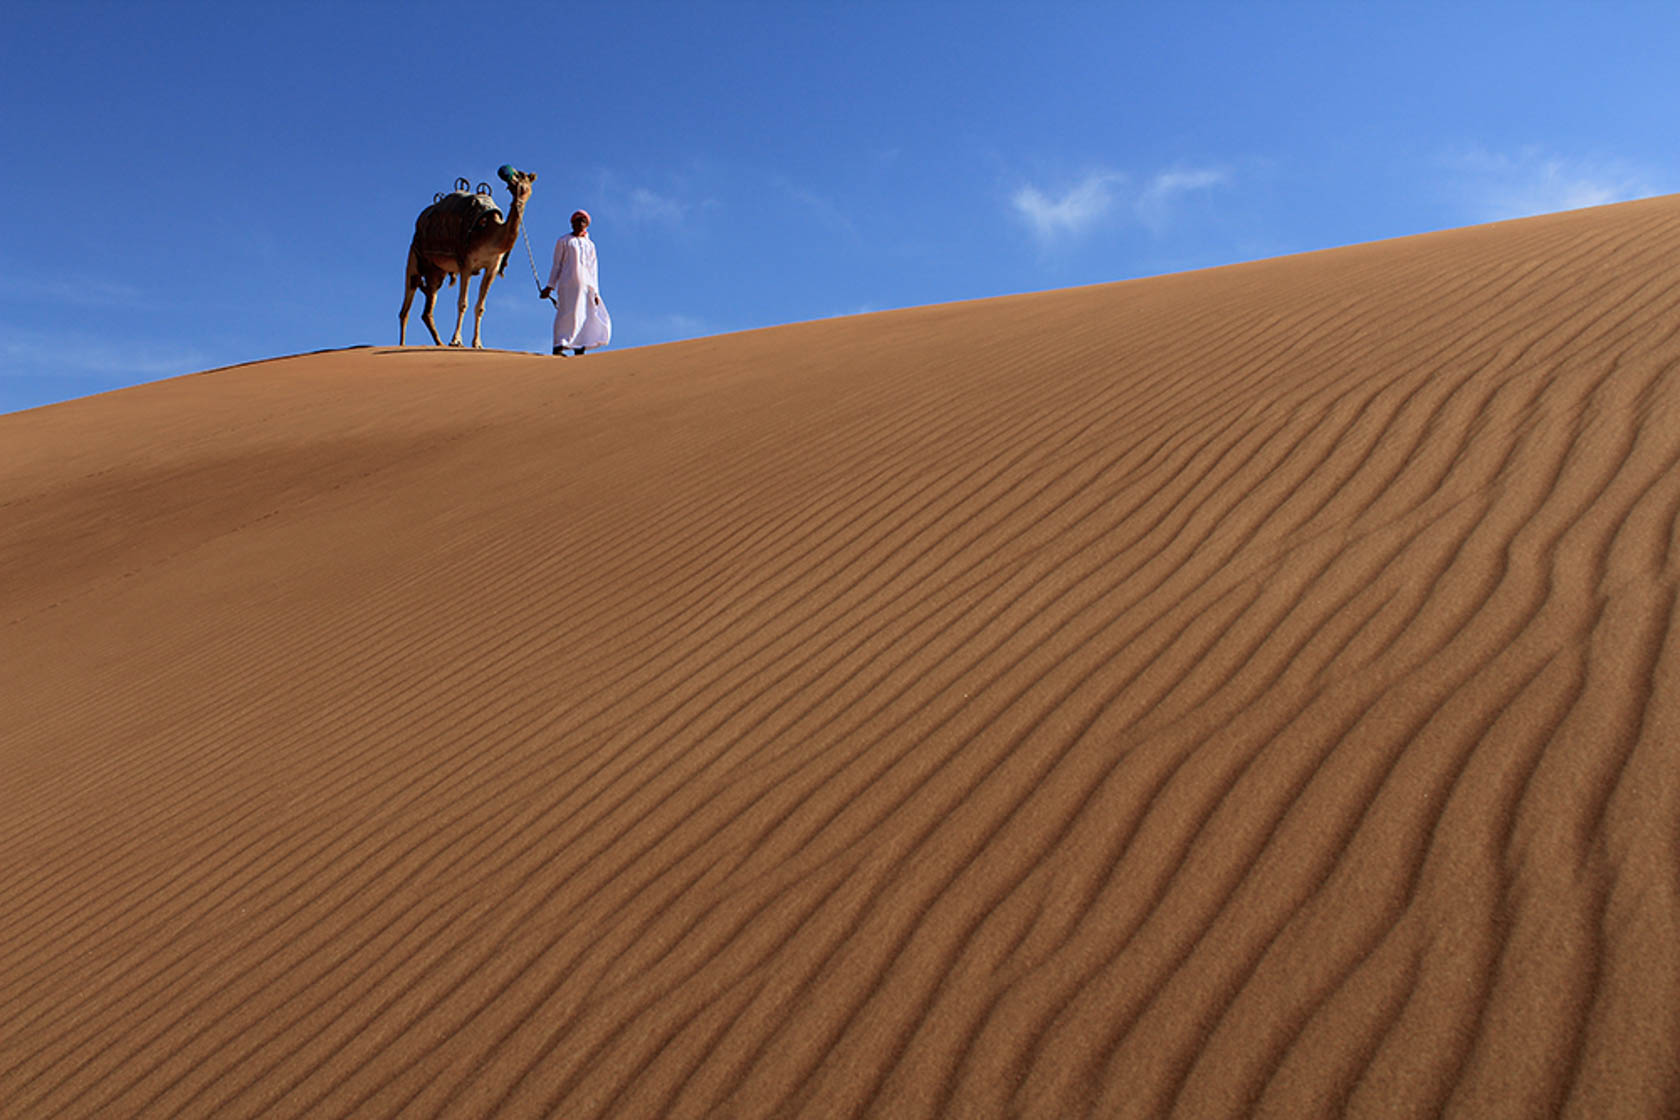 Man leading a camel across the sand dunes taken with Canon EOS 1300D DSLR camera